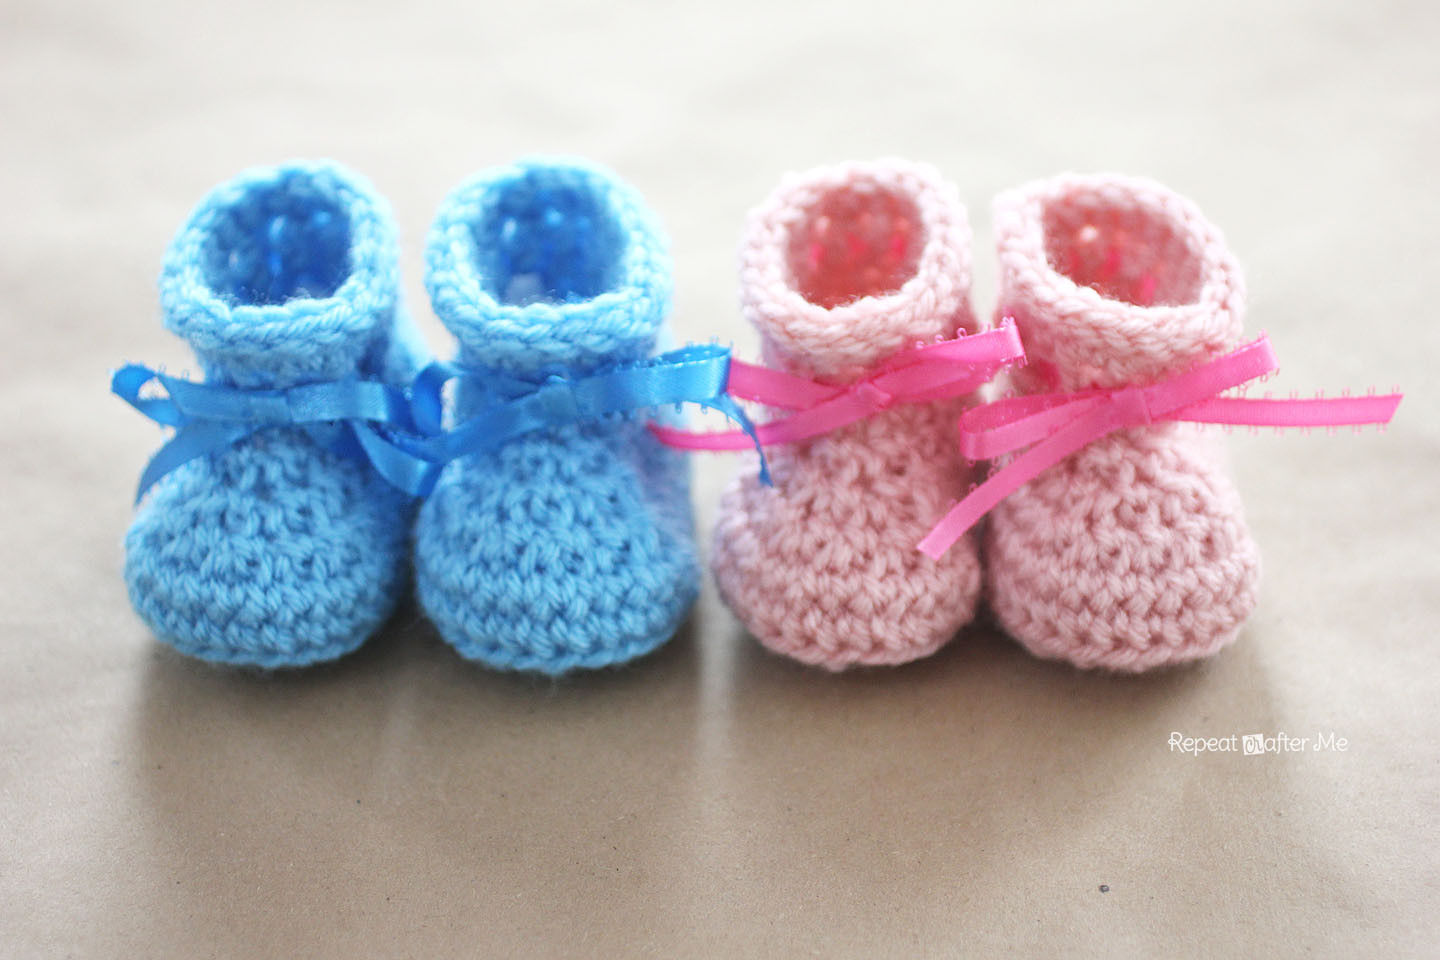 Baby Booties Pattern Fresh Crochet Newborn Baby Booties Pattern Repeat Crafter Me Of Amazing 50 Pics Baby Booties Pattern